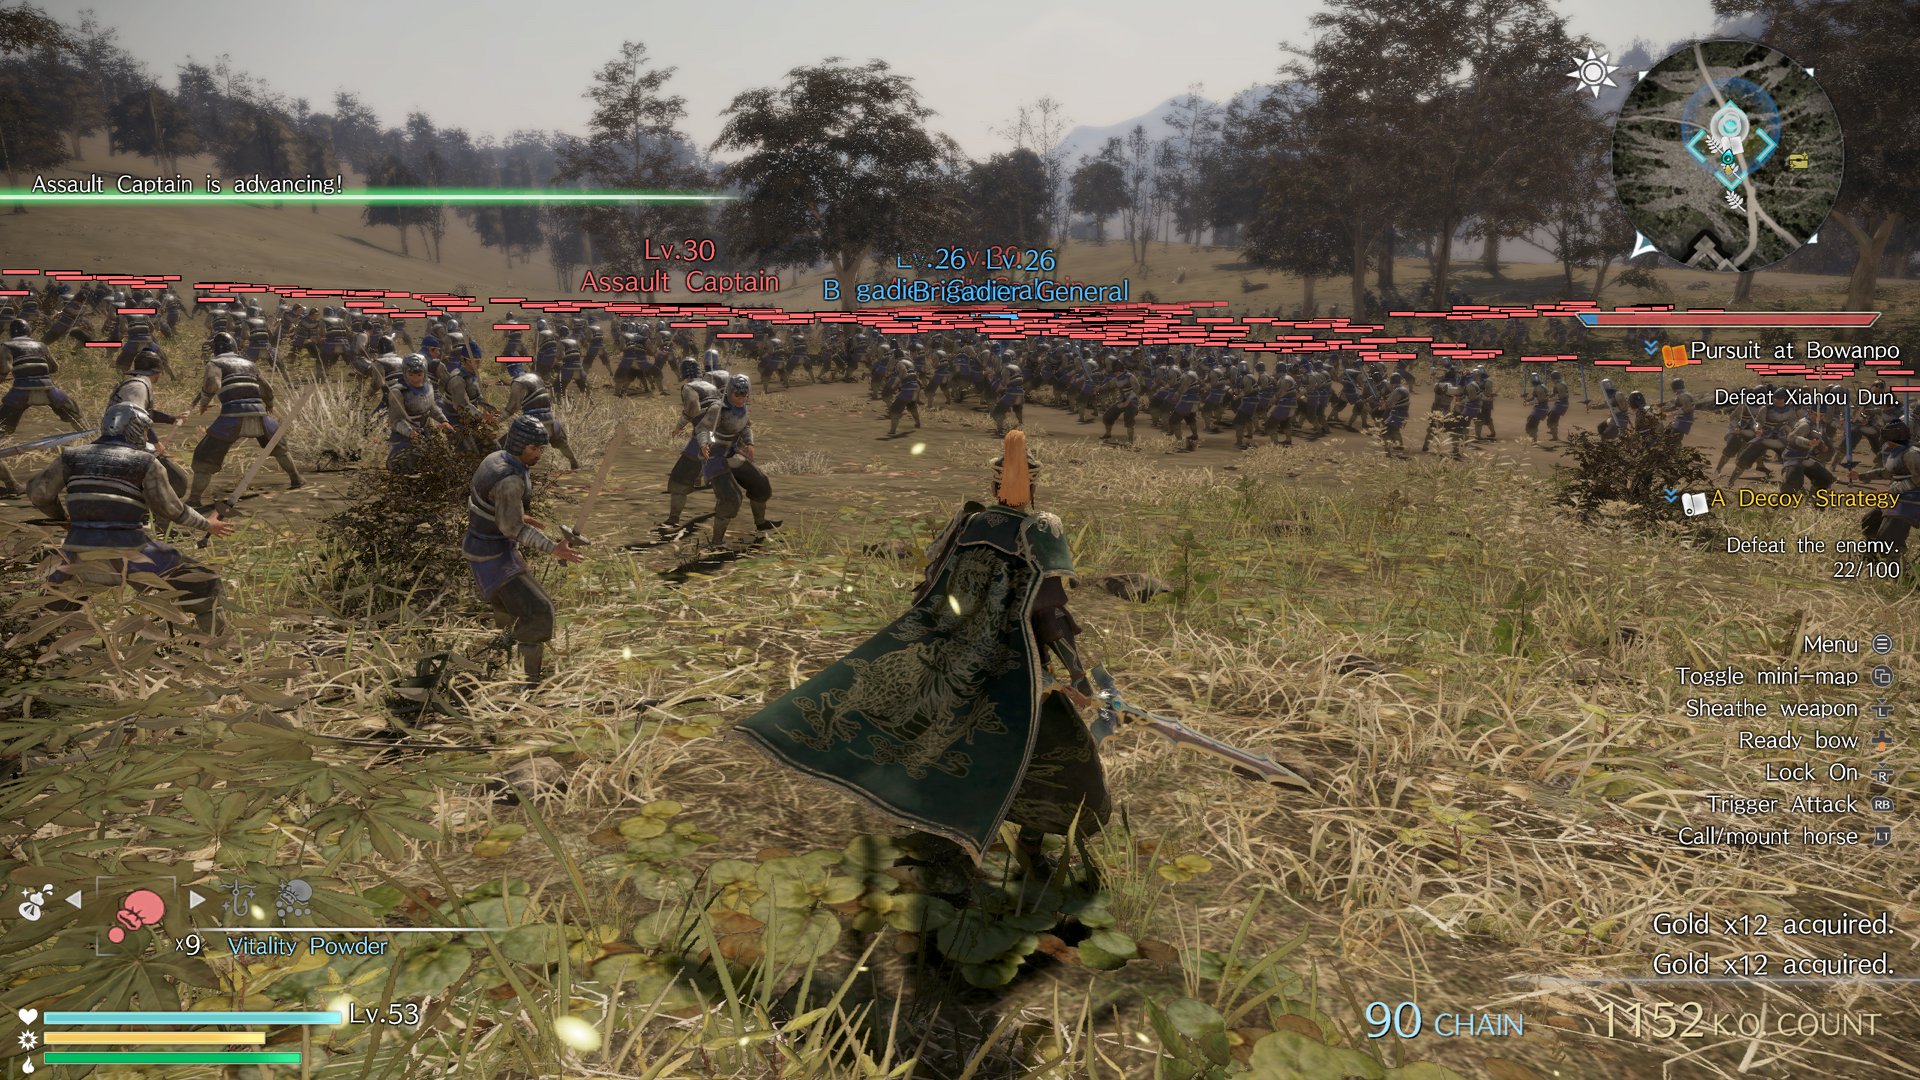 Dynasty Warriors 9 Impressions After A Week Alex Rowe Medium Game Ps4 8 Xtreme Legends Complete Edition Ive Been Playing For Now Hoping To Review It Soon